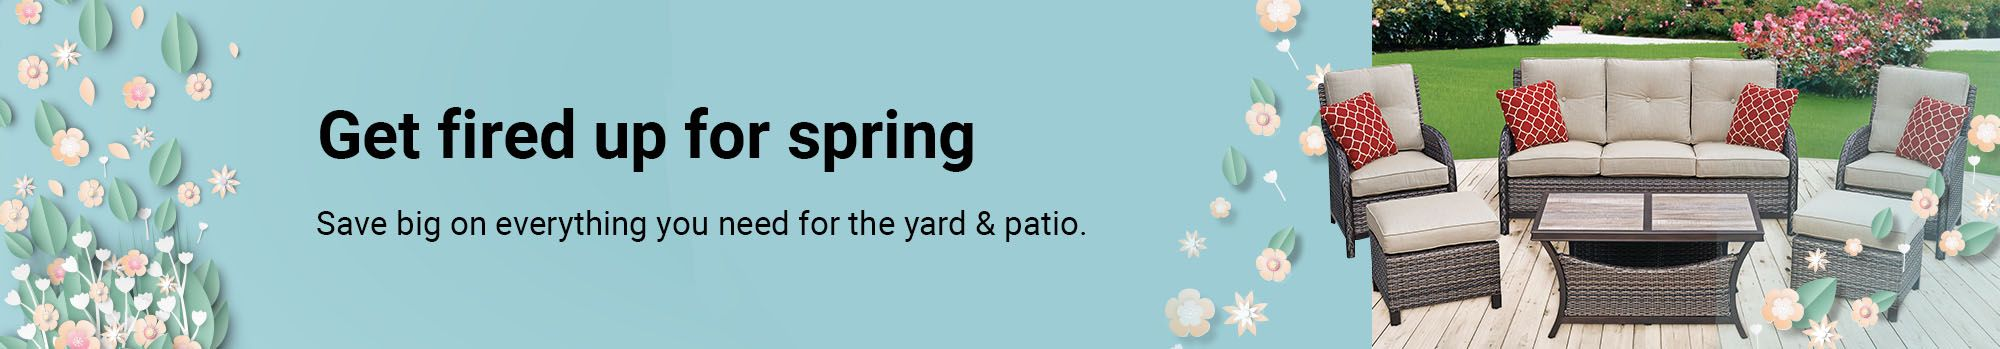 Get fired up for spring. Save big on everything you need for the yard & patio.